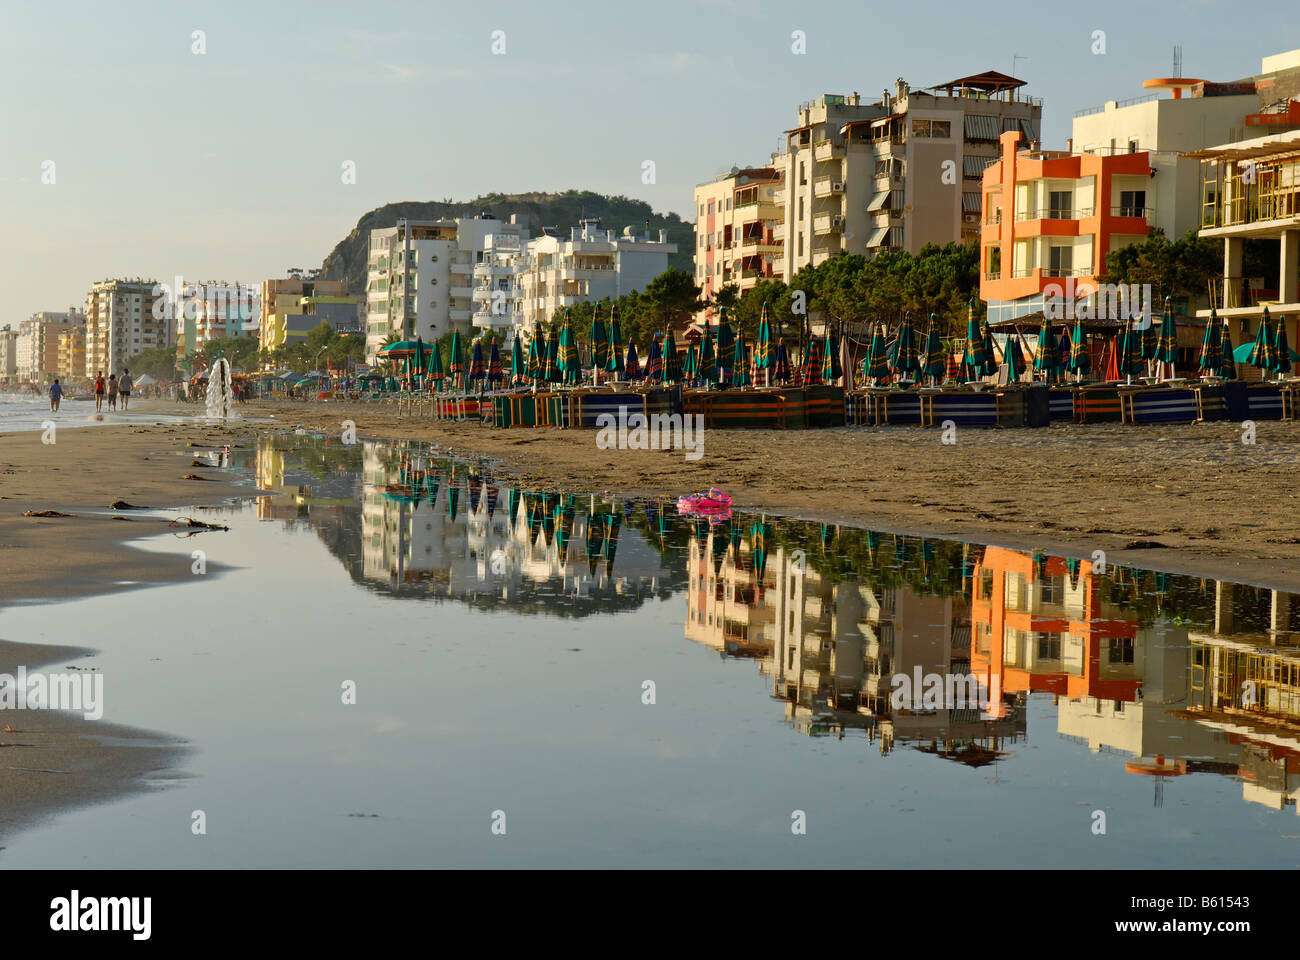 Hotels and restaurants on Durres beach, Albania, Europe - Stock Image